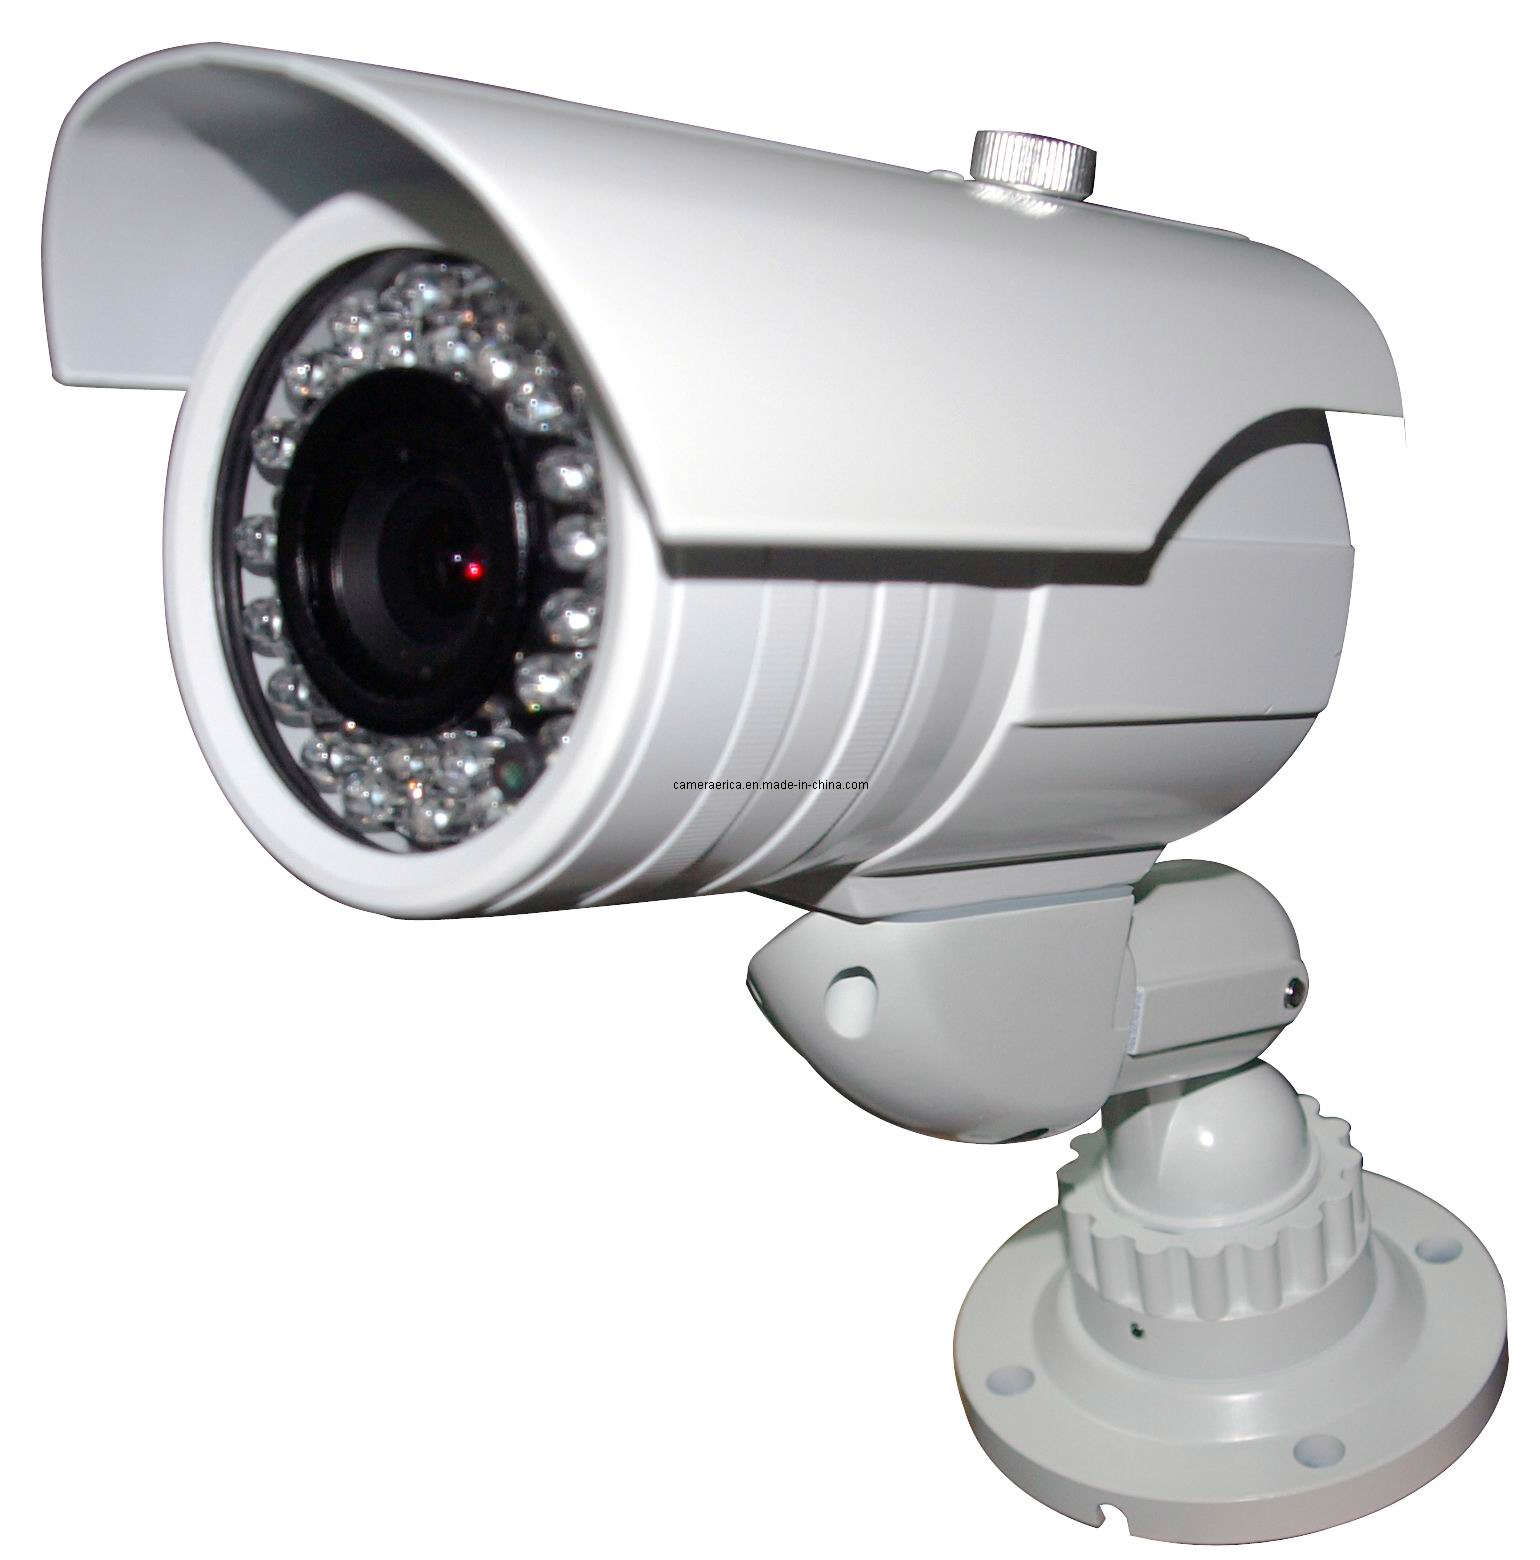 Five Of The Best Locations For Home Security Cameras ...